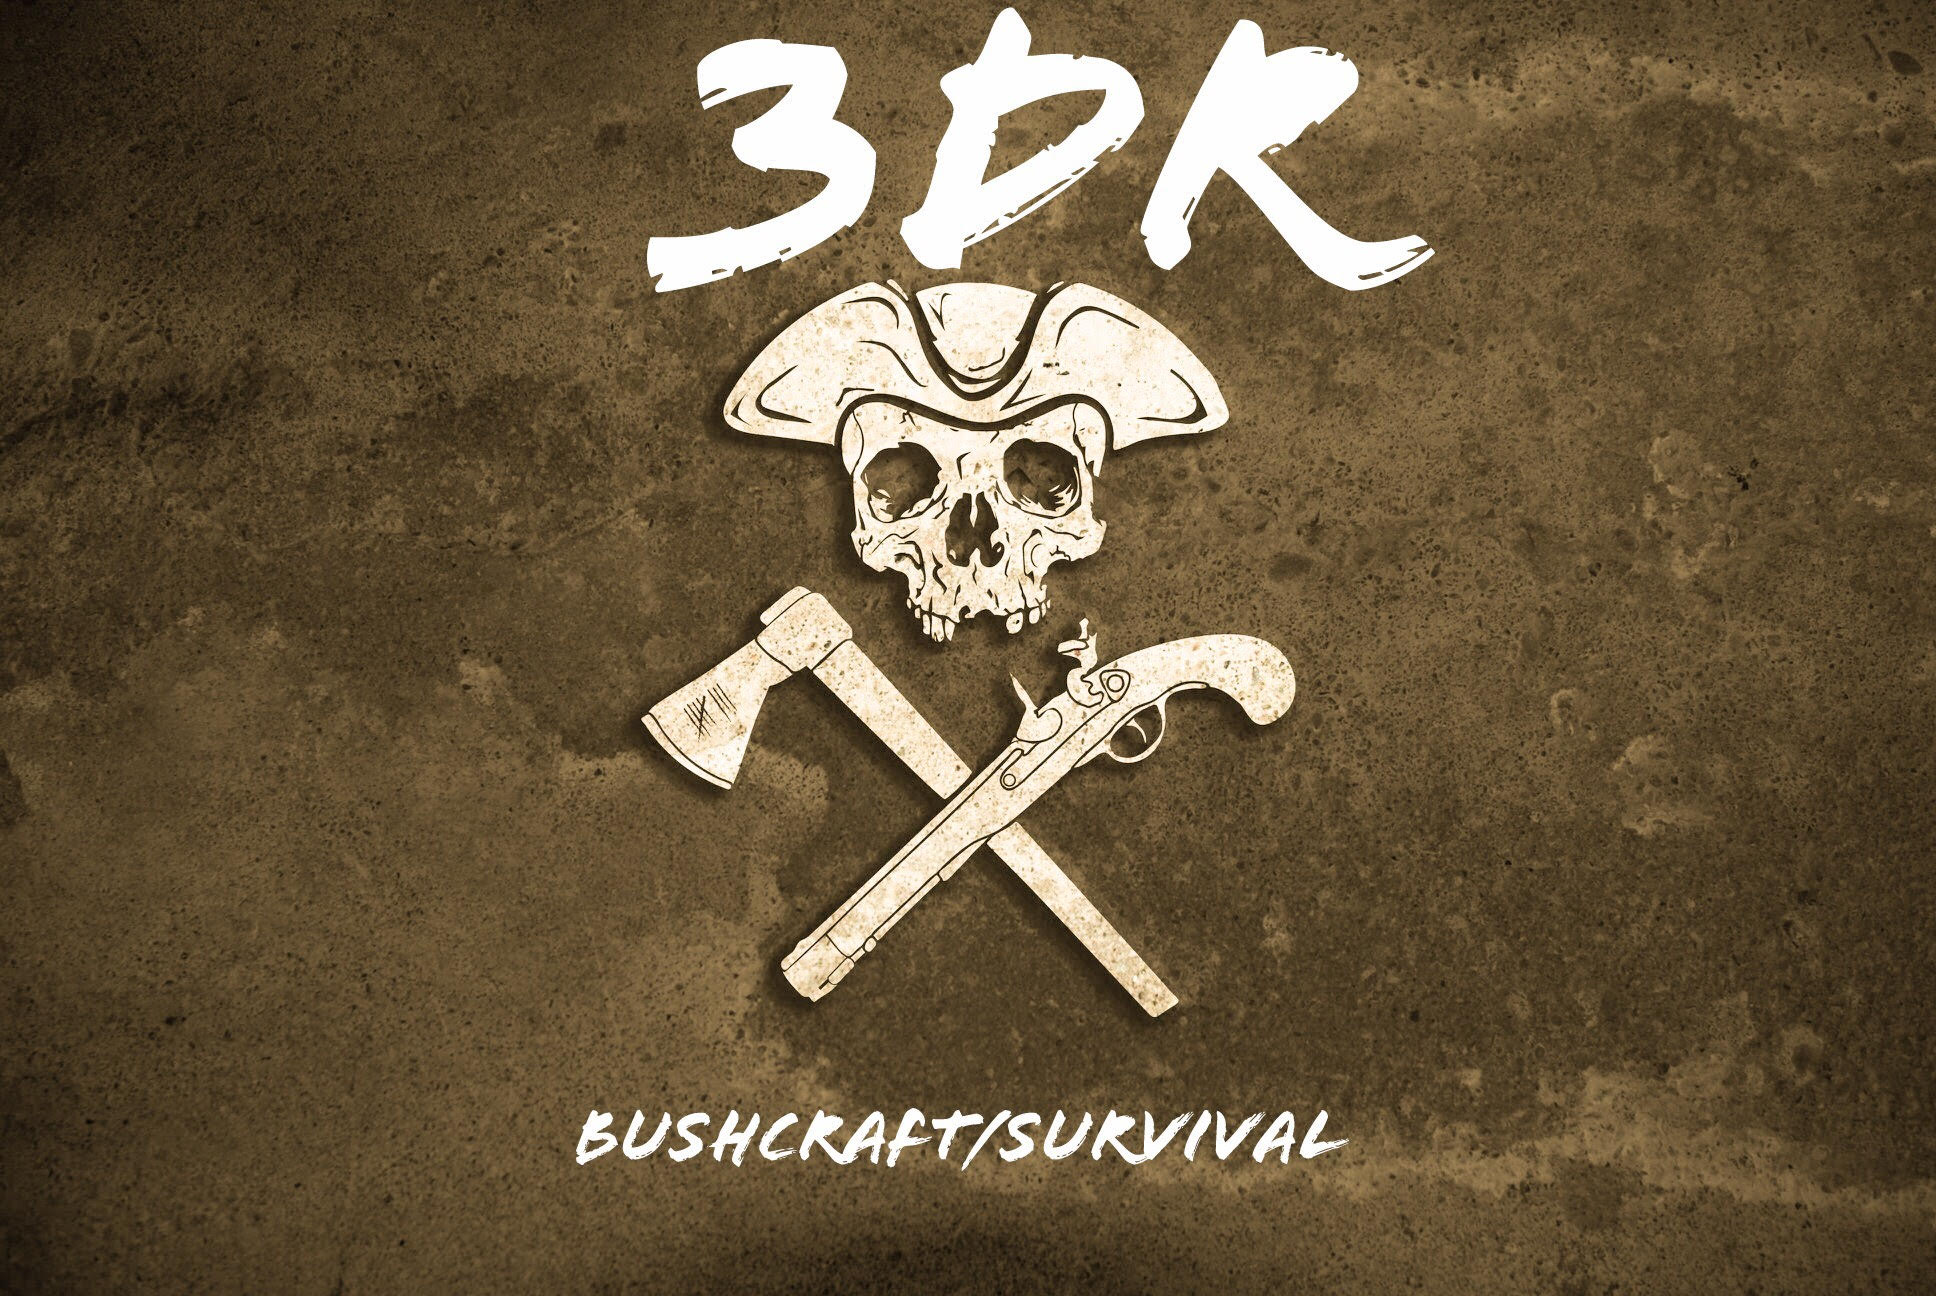 Budget Preparedness with 3DR Survival/Bushcraft [Feature Friday]